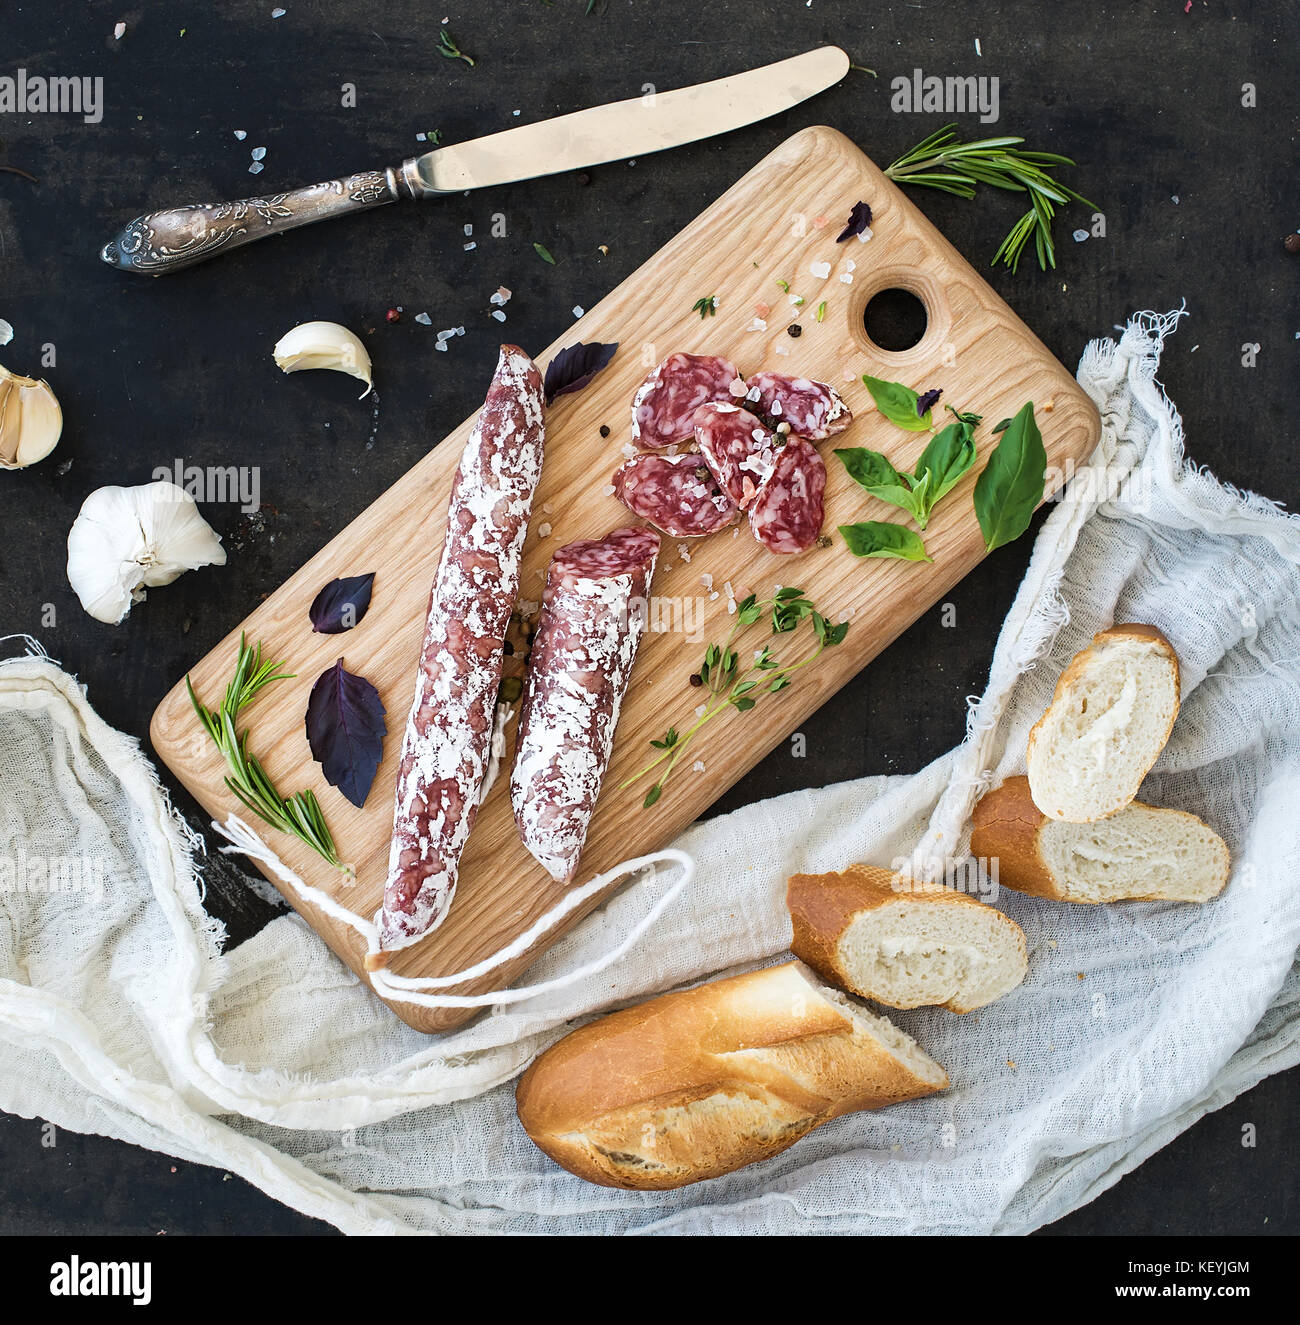 Meat gourmet snack. Salami, garlic, baguette and herbs on rustic wooden board - Stock Image